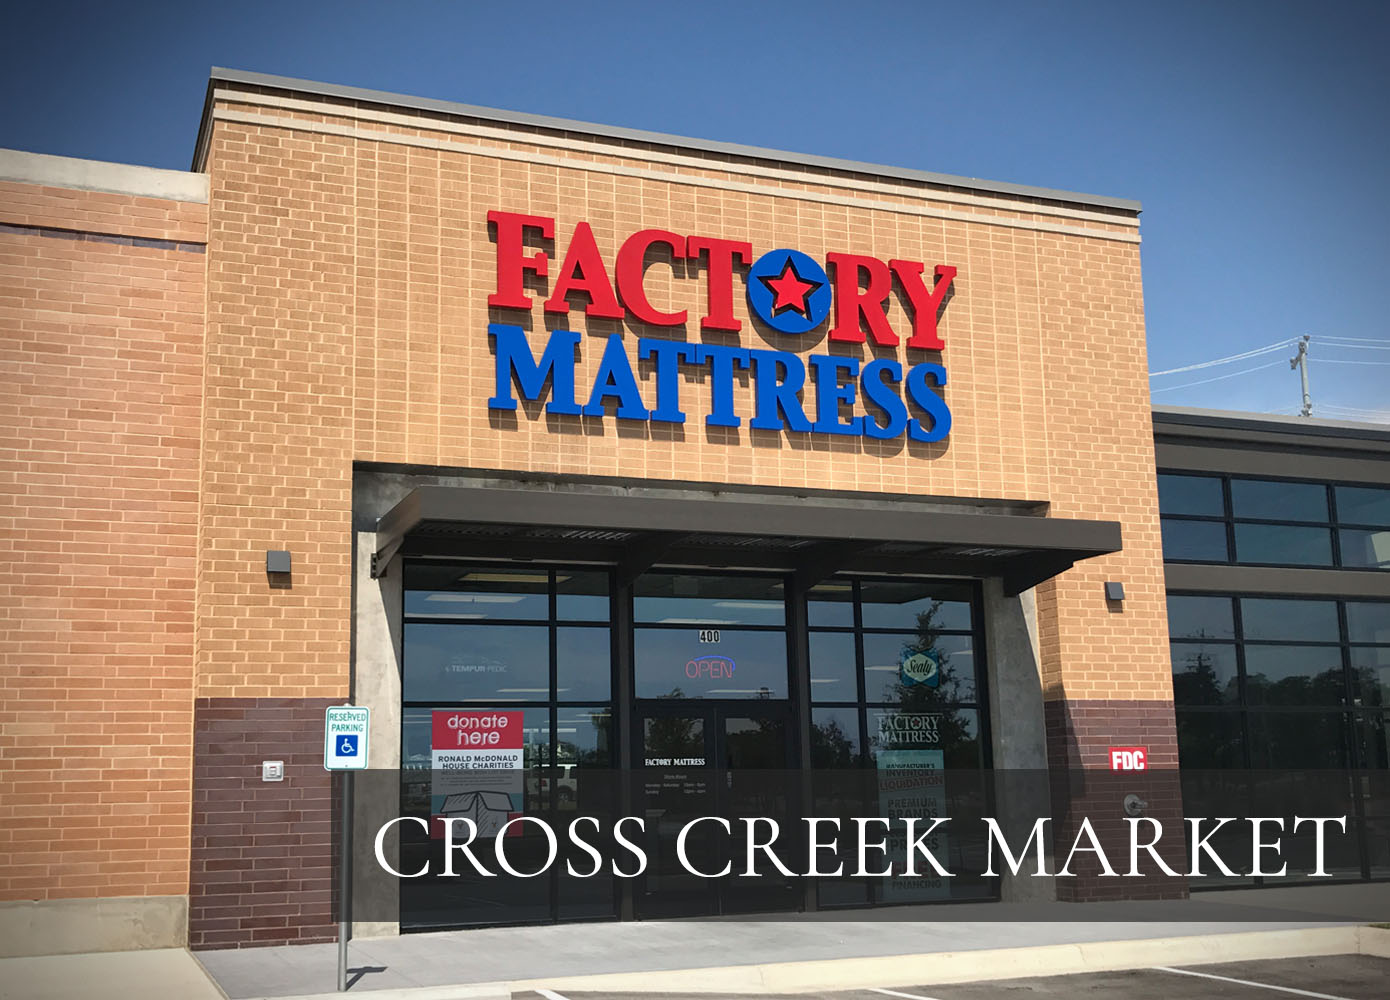 Cross_Creek_Market_img2